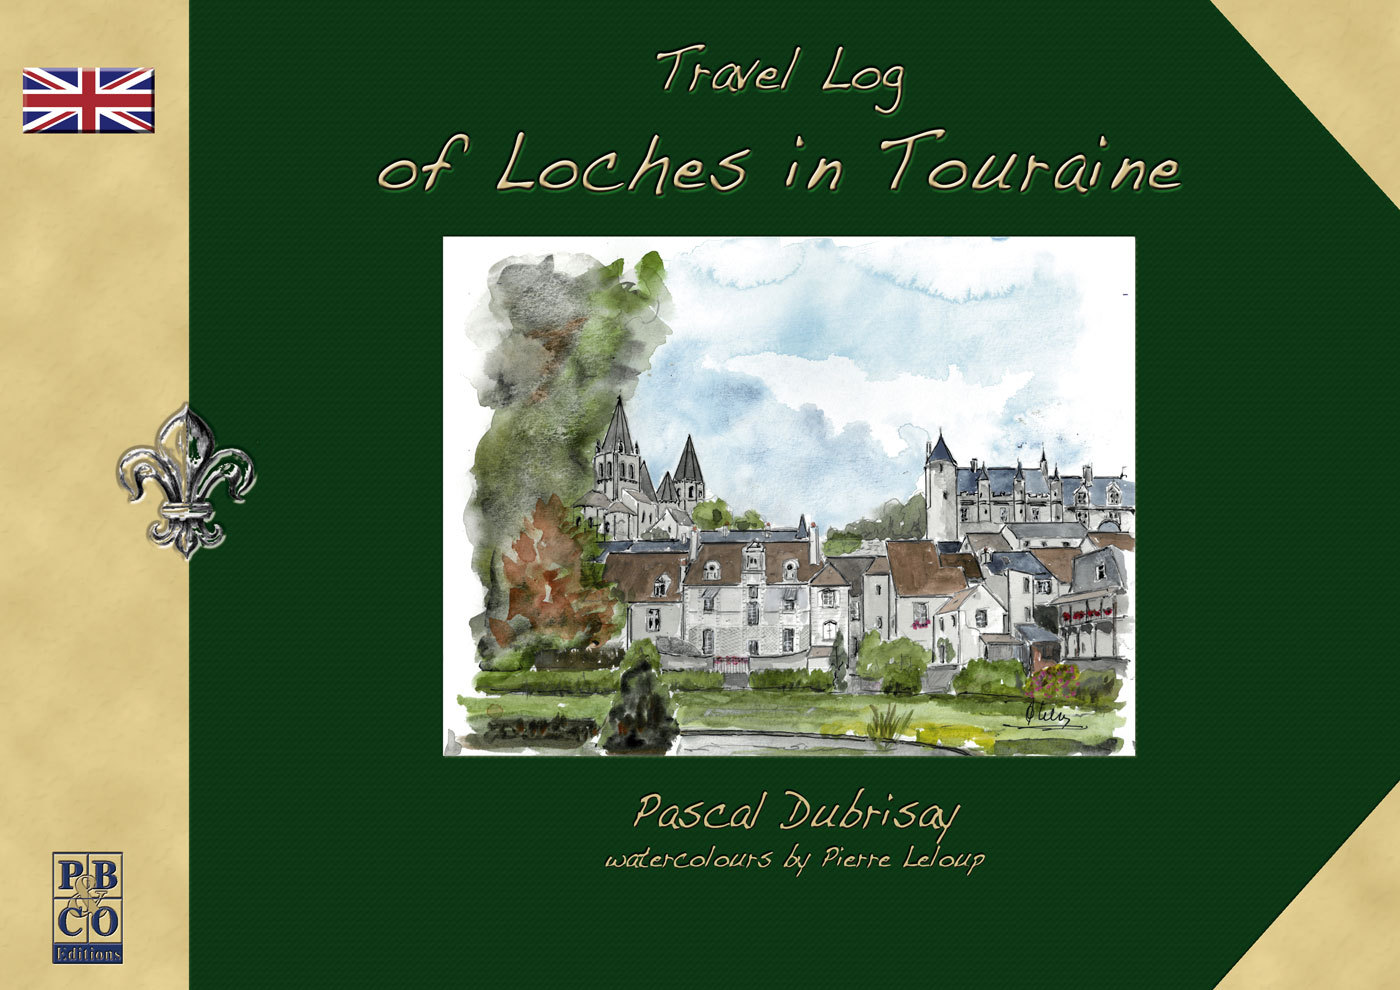 TRAVEL LOG OF LOCHES IN TOURAINE